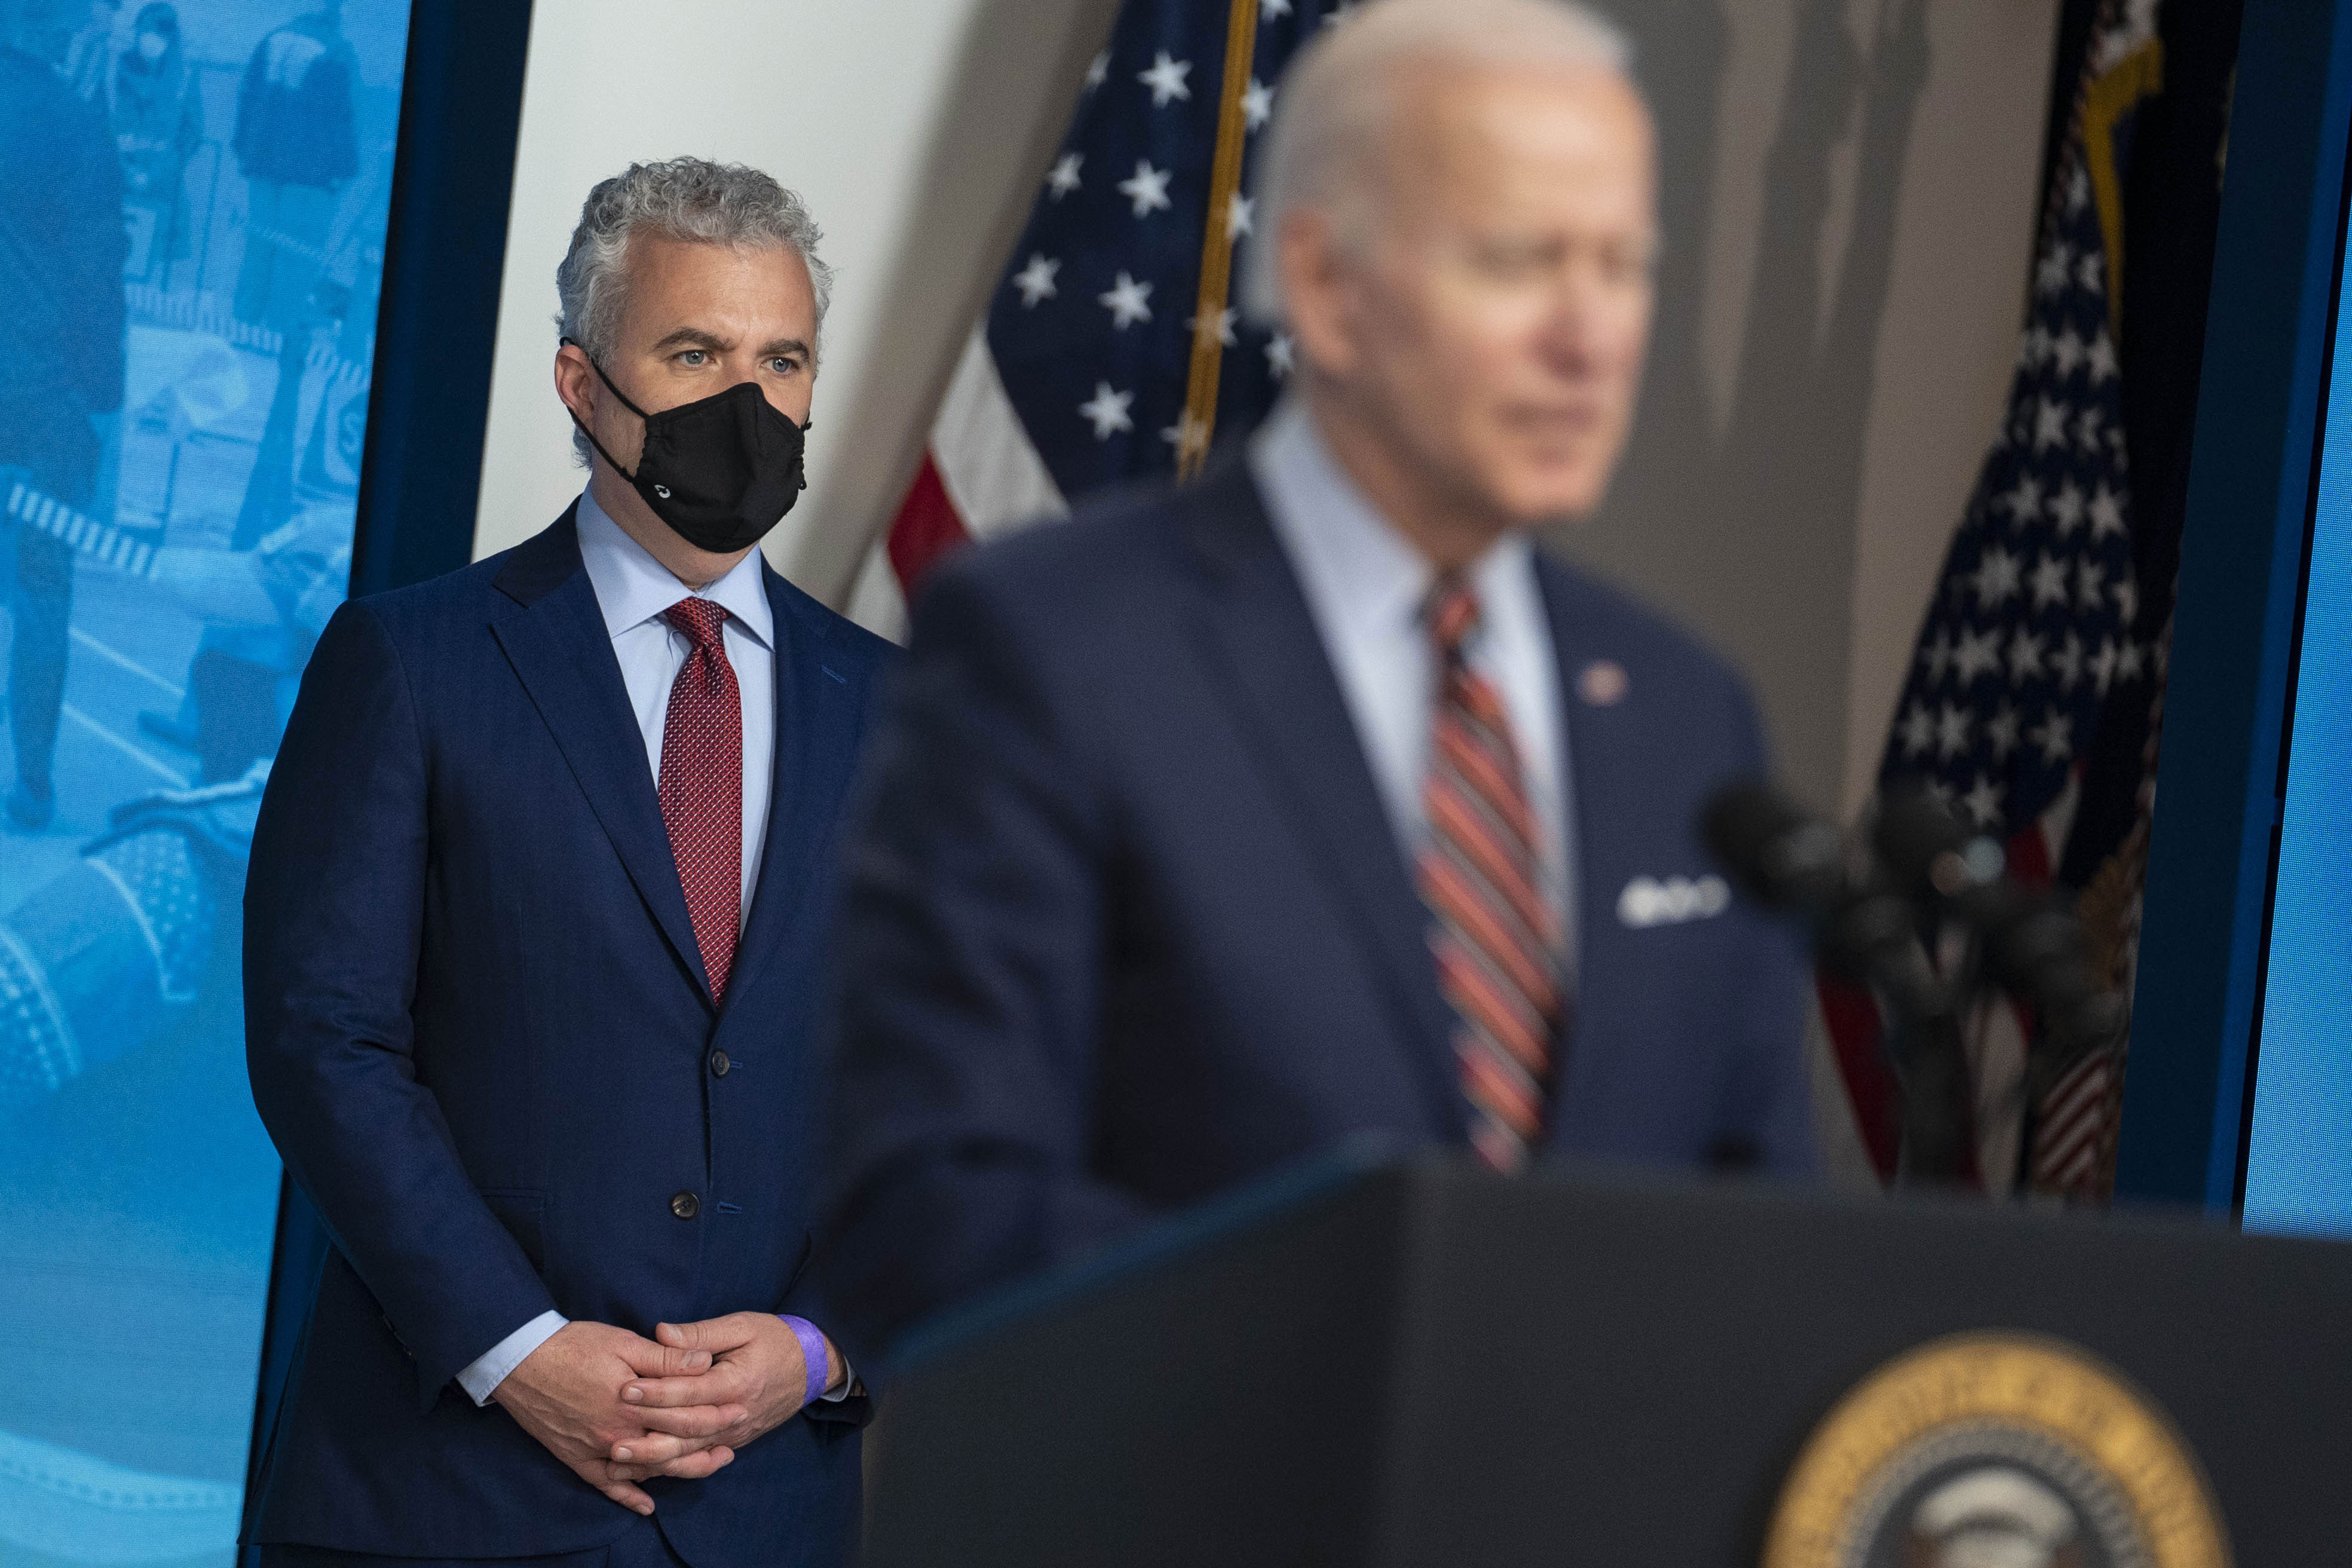 Jeff Zients, White House Covid-19 coordinator, left, wears a protective mask while listening as President Joe Biden speaks on Wednesday, April 21.